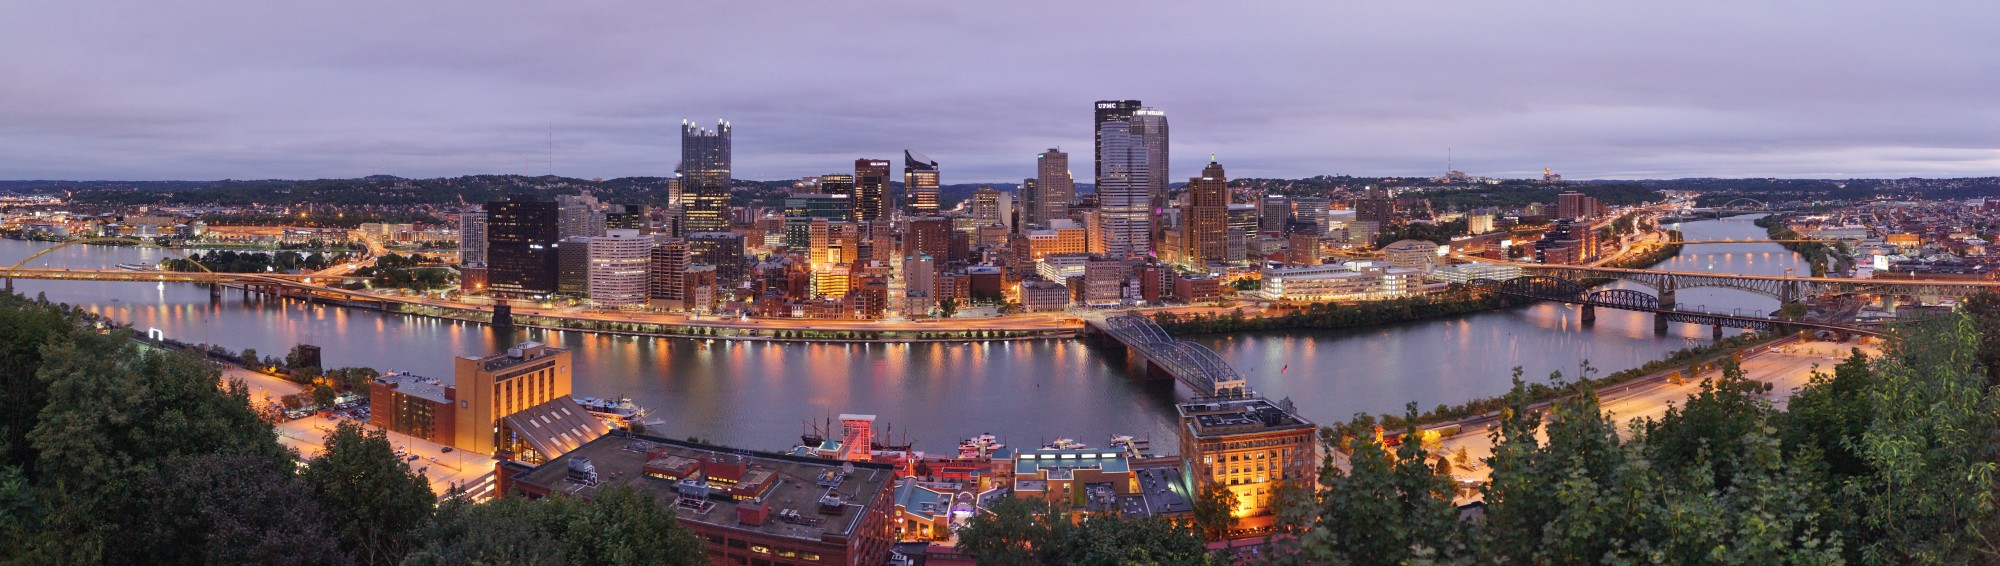 Pittsburgh dawn city pano 2015